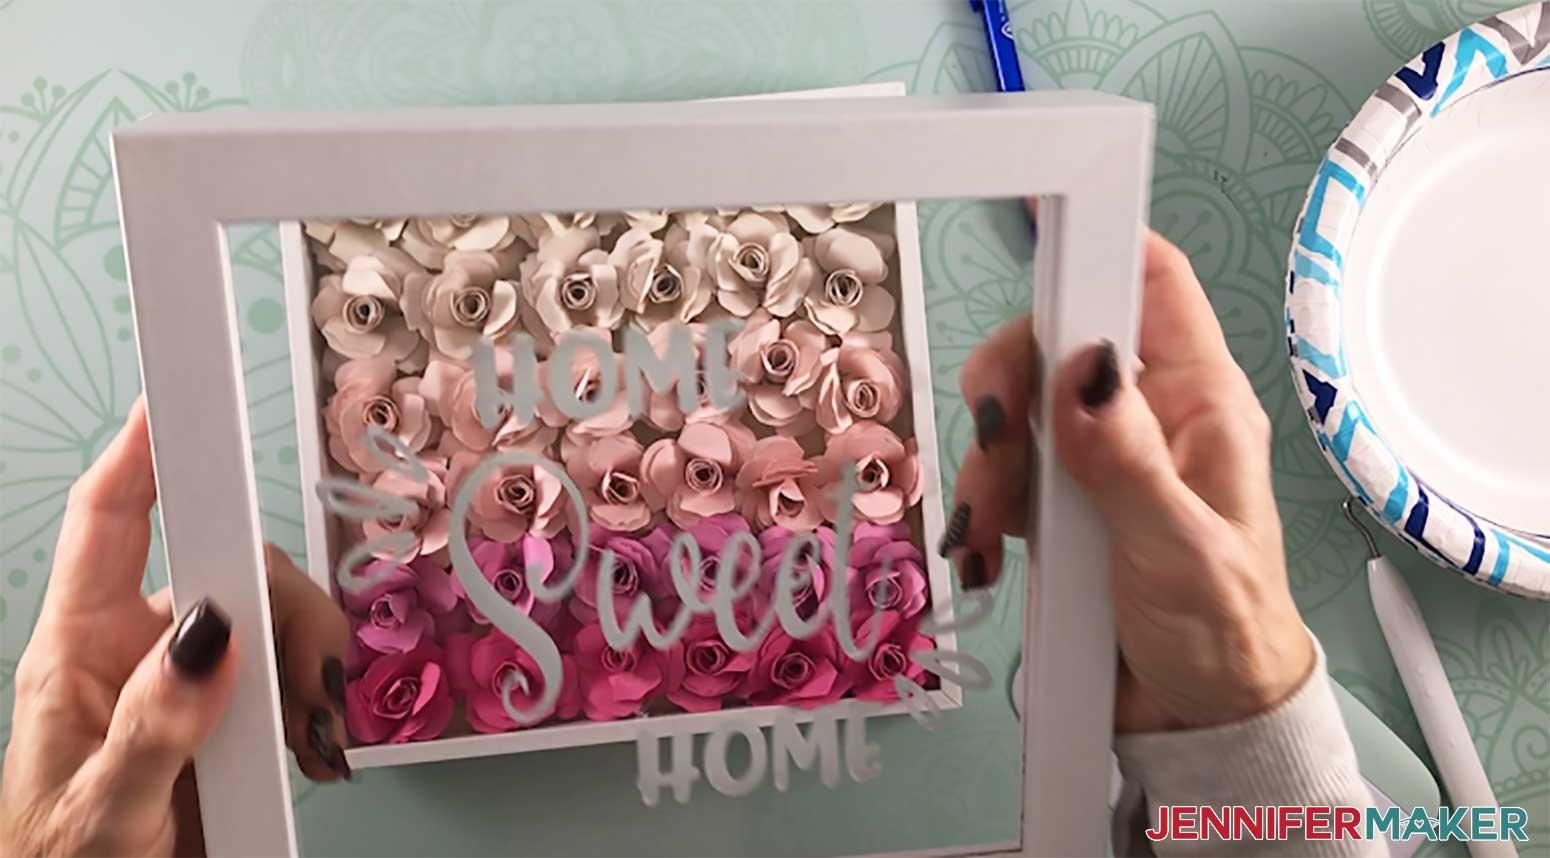 Assembly the paper flower shadow box